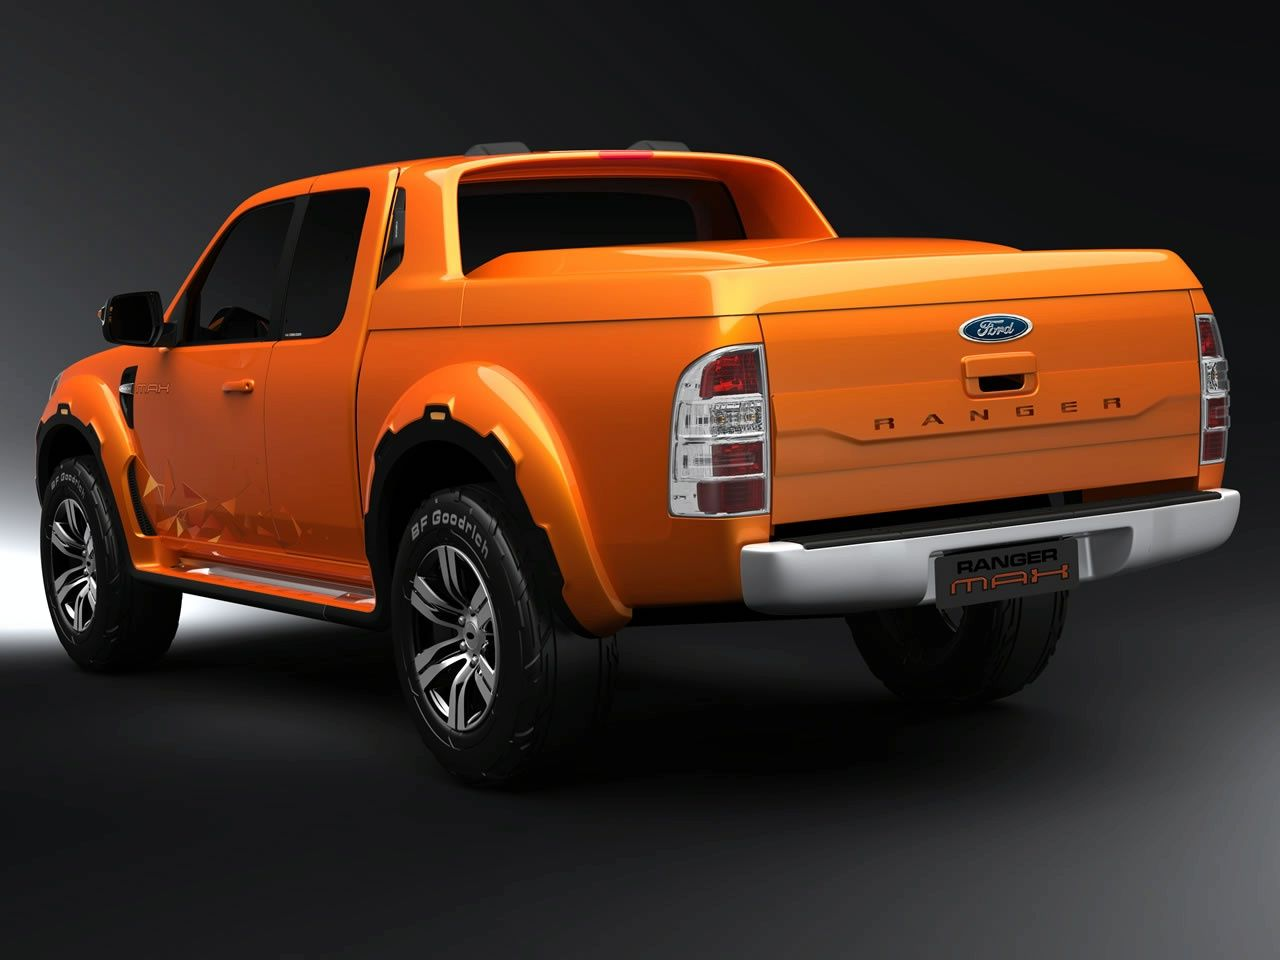 2008 Ford Ranger Max Concept Ford Ranger Max 2008 Concept Ford